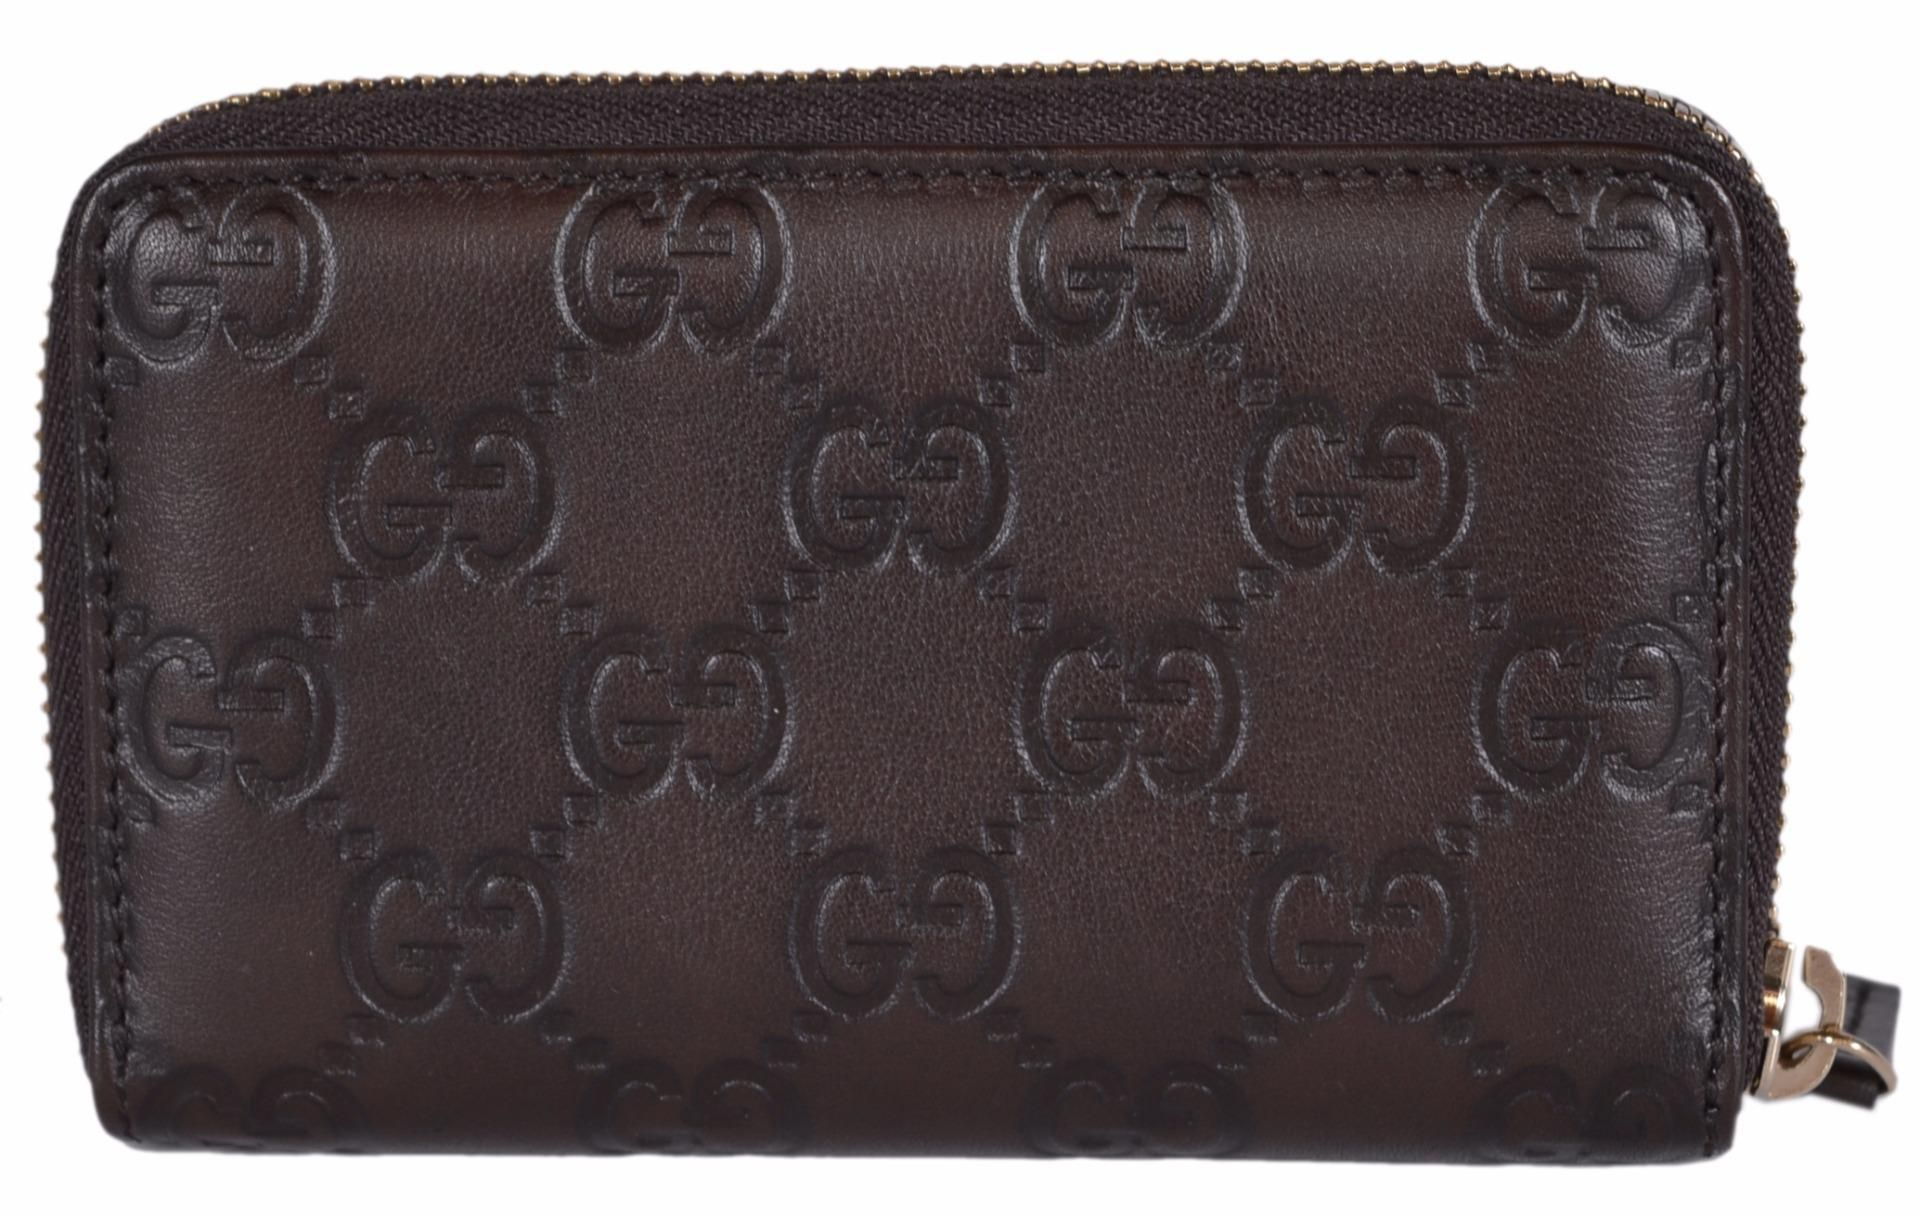 35c695a82d09 NEW Gucci 255452 Brown Leather GG Guccissima Zip Around Card Coin Case.  Free shipping and guaranteed authenticity on NEW Gucci 255452 Brown Leather  GG ...